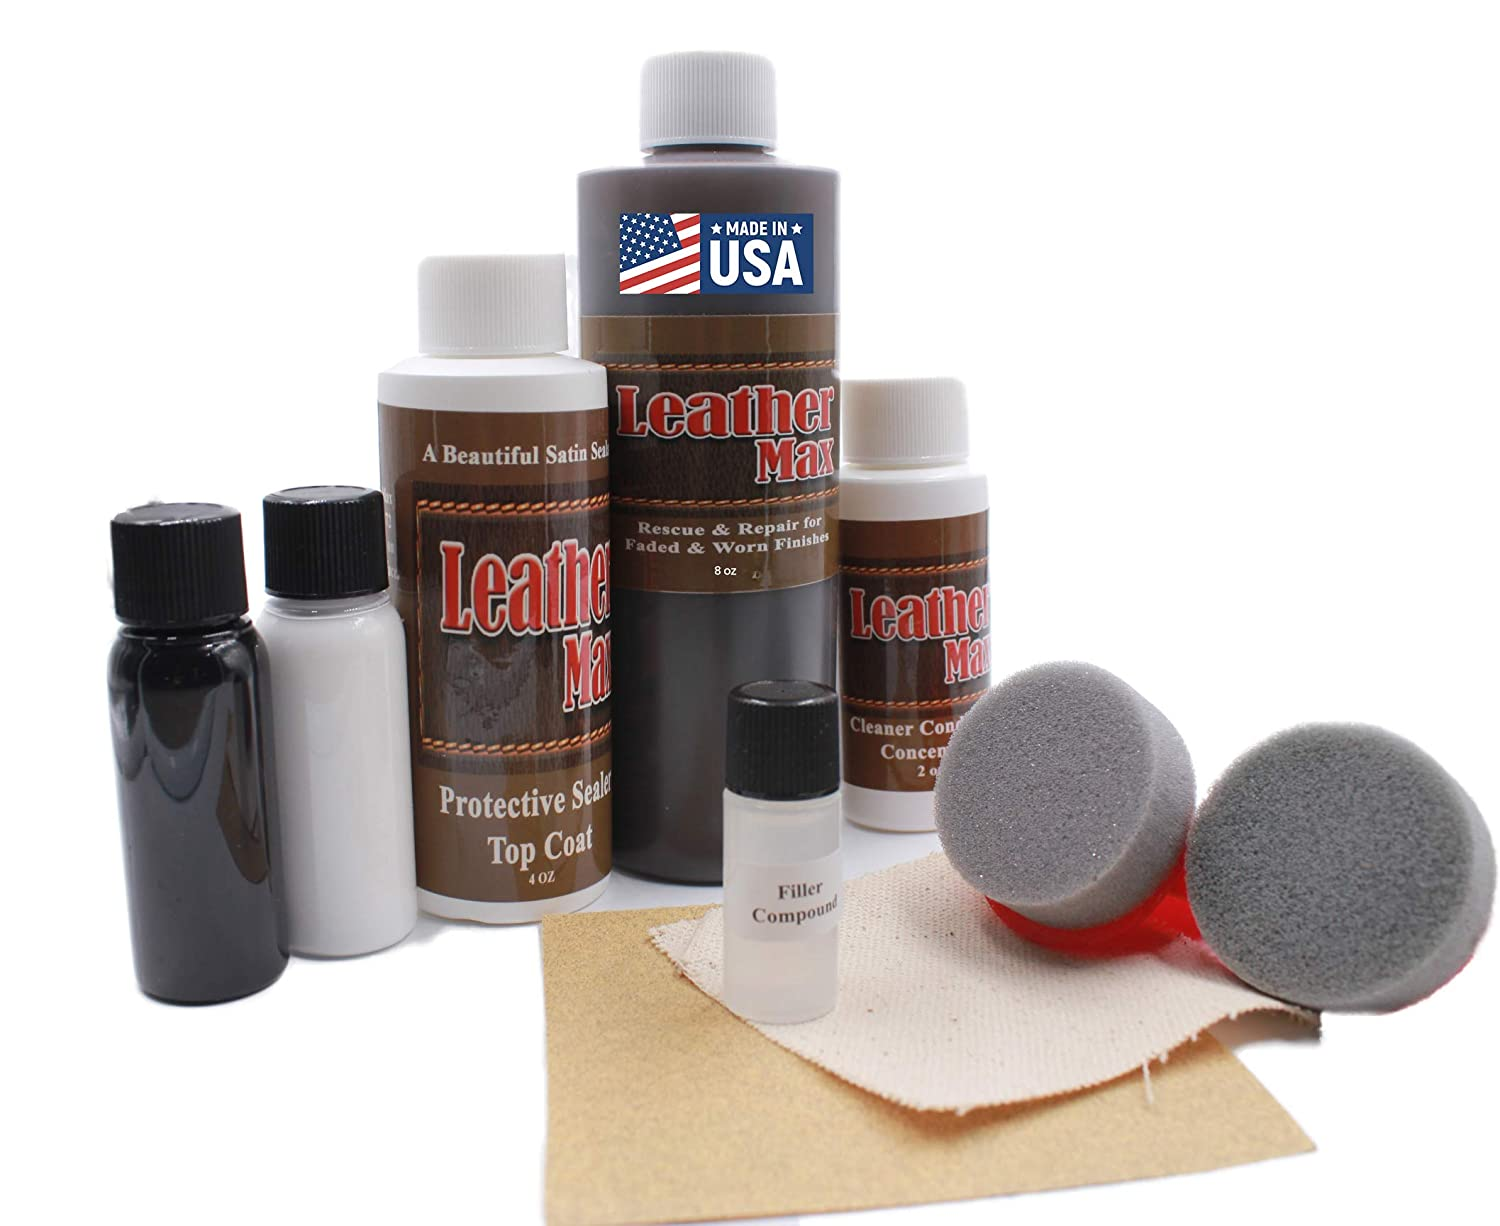 Furniture Leather Max MEGA Kit/Leather Restorer / 8 Oz Refinish 2 Oz Conditioner / 4 Oz Top Coat/Black and White 1 Oz Color Changer/Sponge (Leather ...